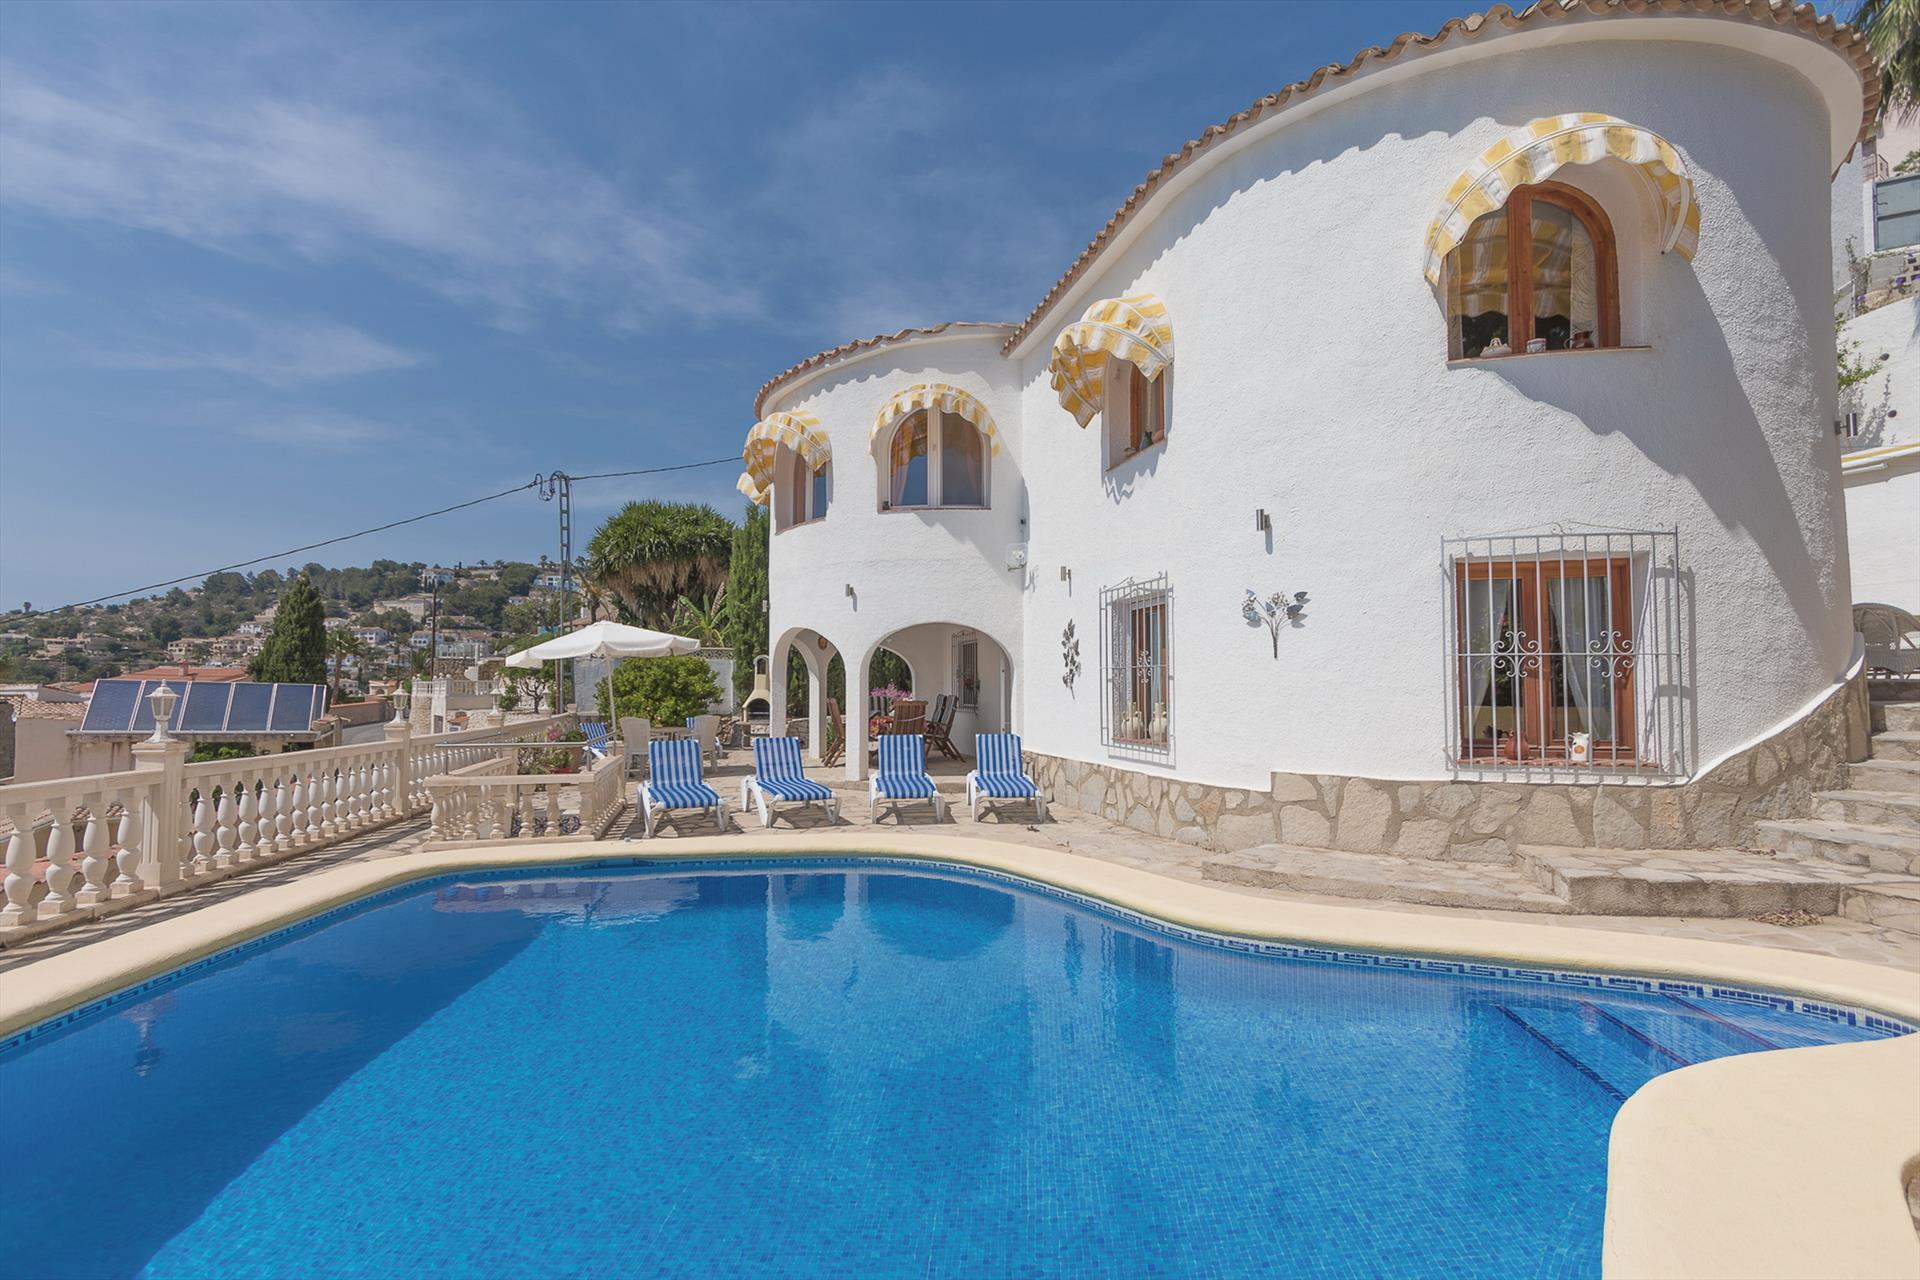 Bellavista 6P, Villa Bellavista – nearby the coast between Moraira and CalpeVery well maintained and comfortable holiday villa with.....